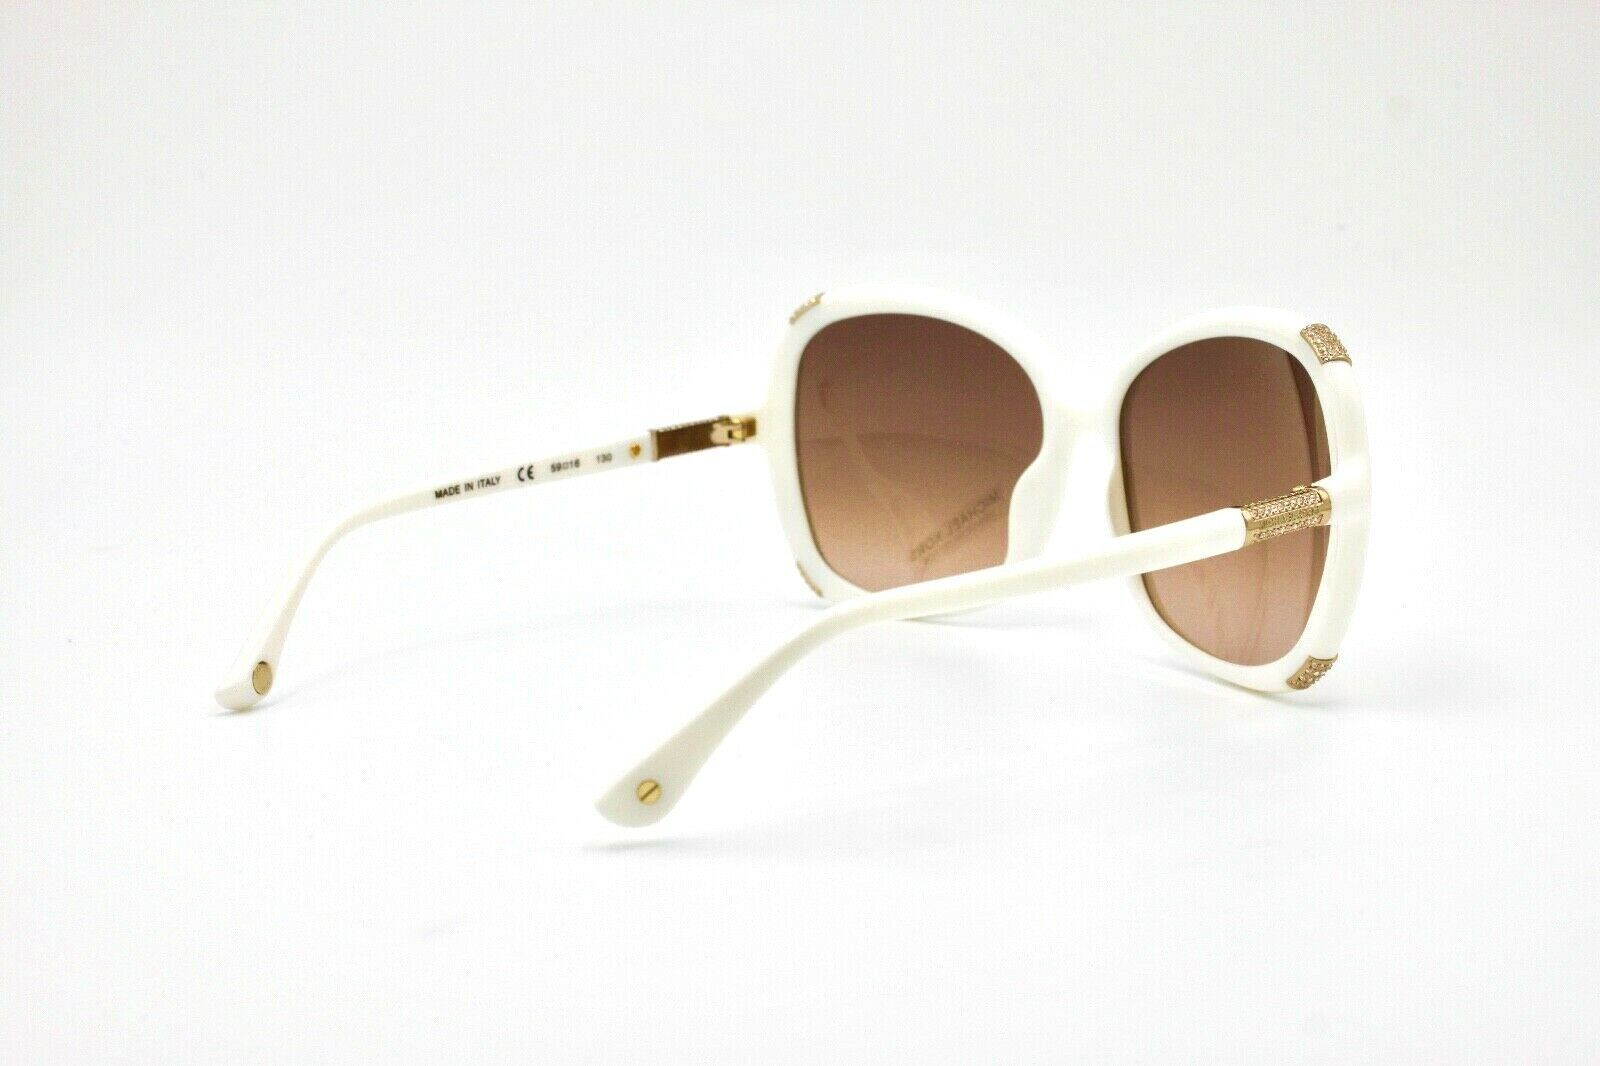 Michael Kors Sunglasses Abigail MKS845 103 59 16 130 Made in Italy - Mydesigneroptic